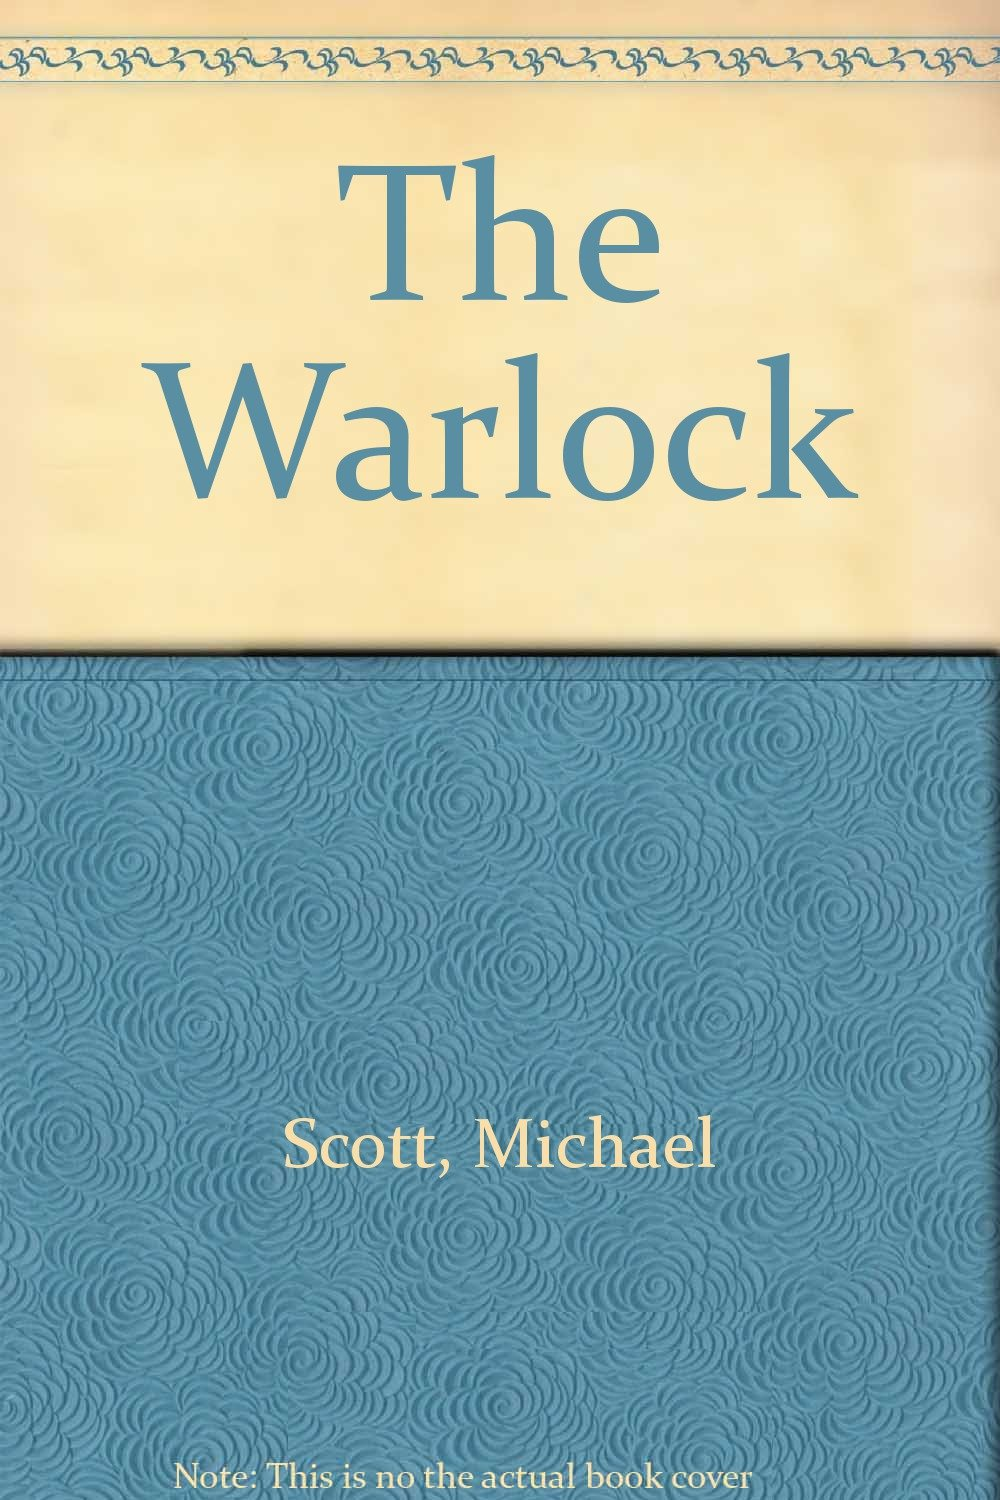 Buy The Warlock Book Online At Low Prices In India  The Warlock Reviews &  Ratings  Amazon